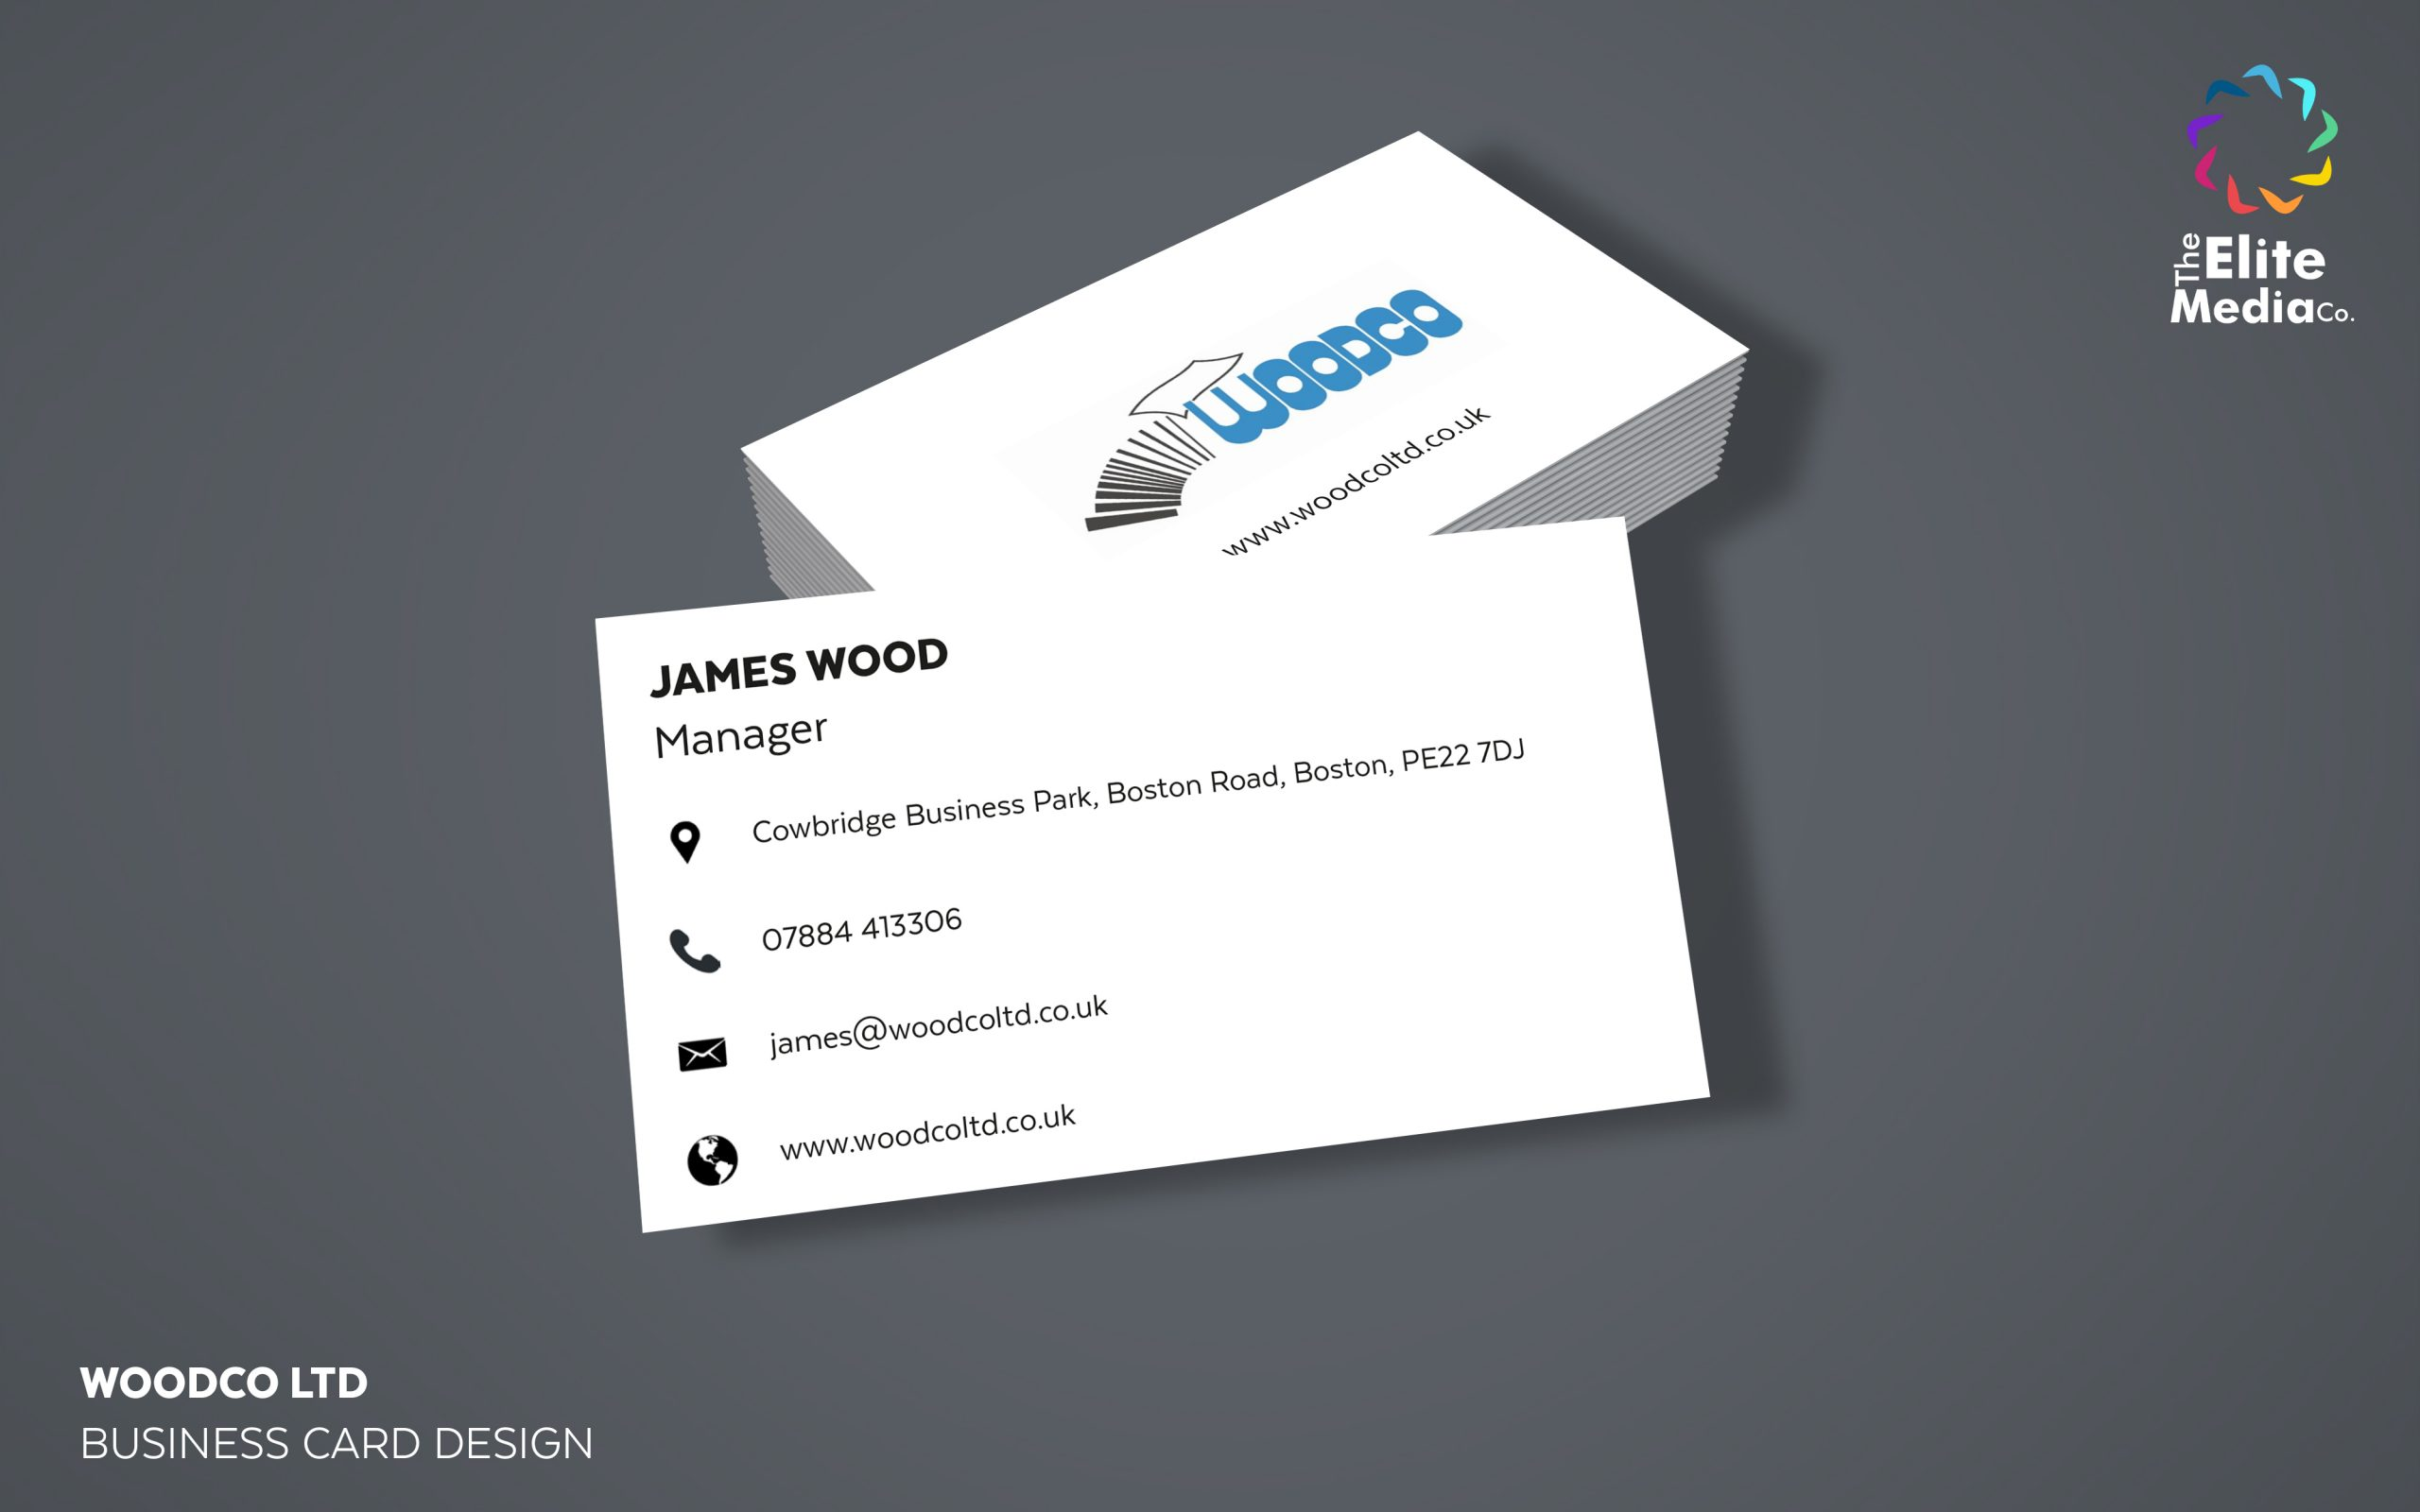 Woodco Ltd – Business Card